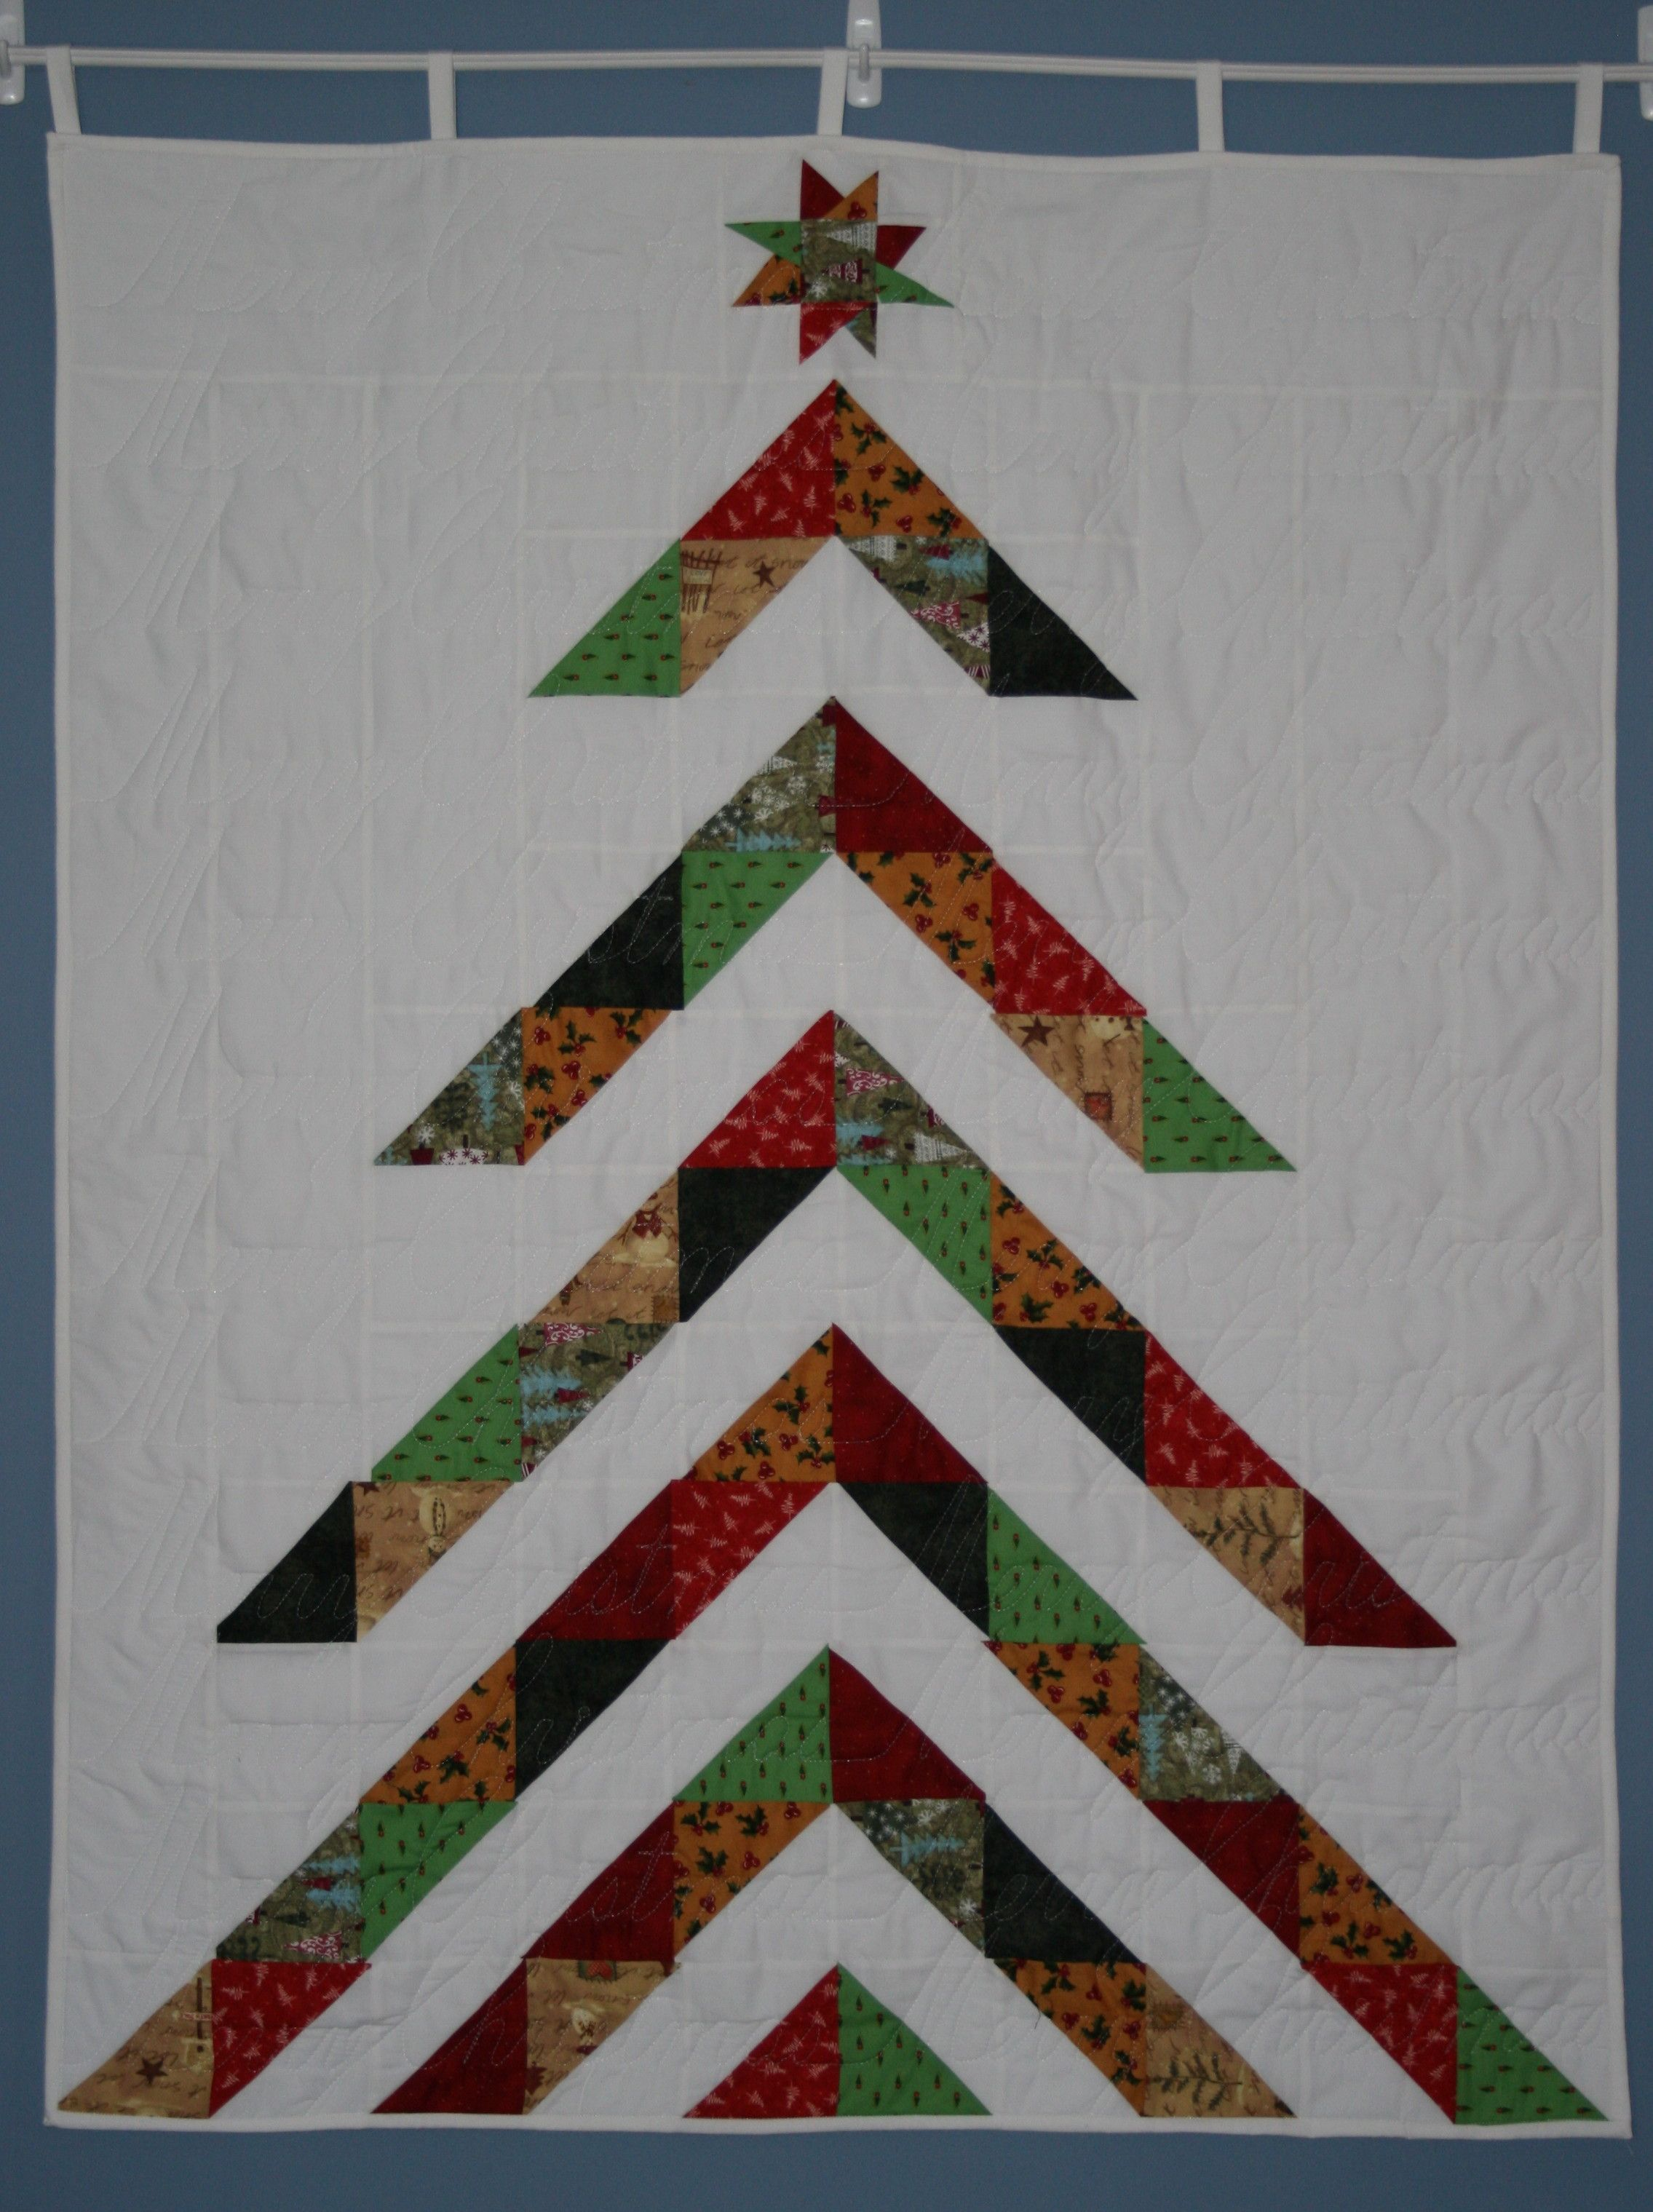 My Moda Pattern Christmas Tree Wall Hanging Quilted With Merry Christmas Across The Quilted Wall Hangings Hanging Quilts Christmas Tree Quilted Wall Hanging